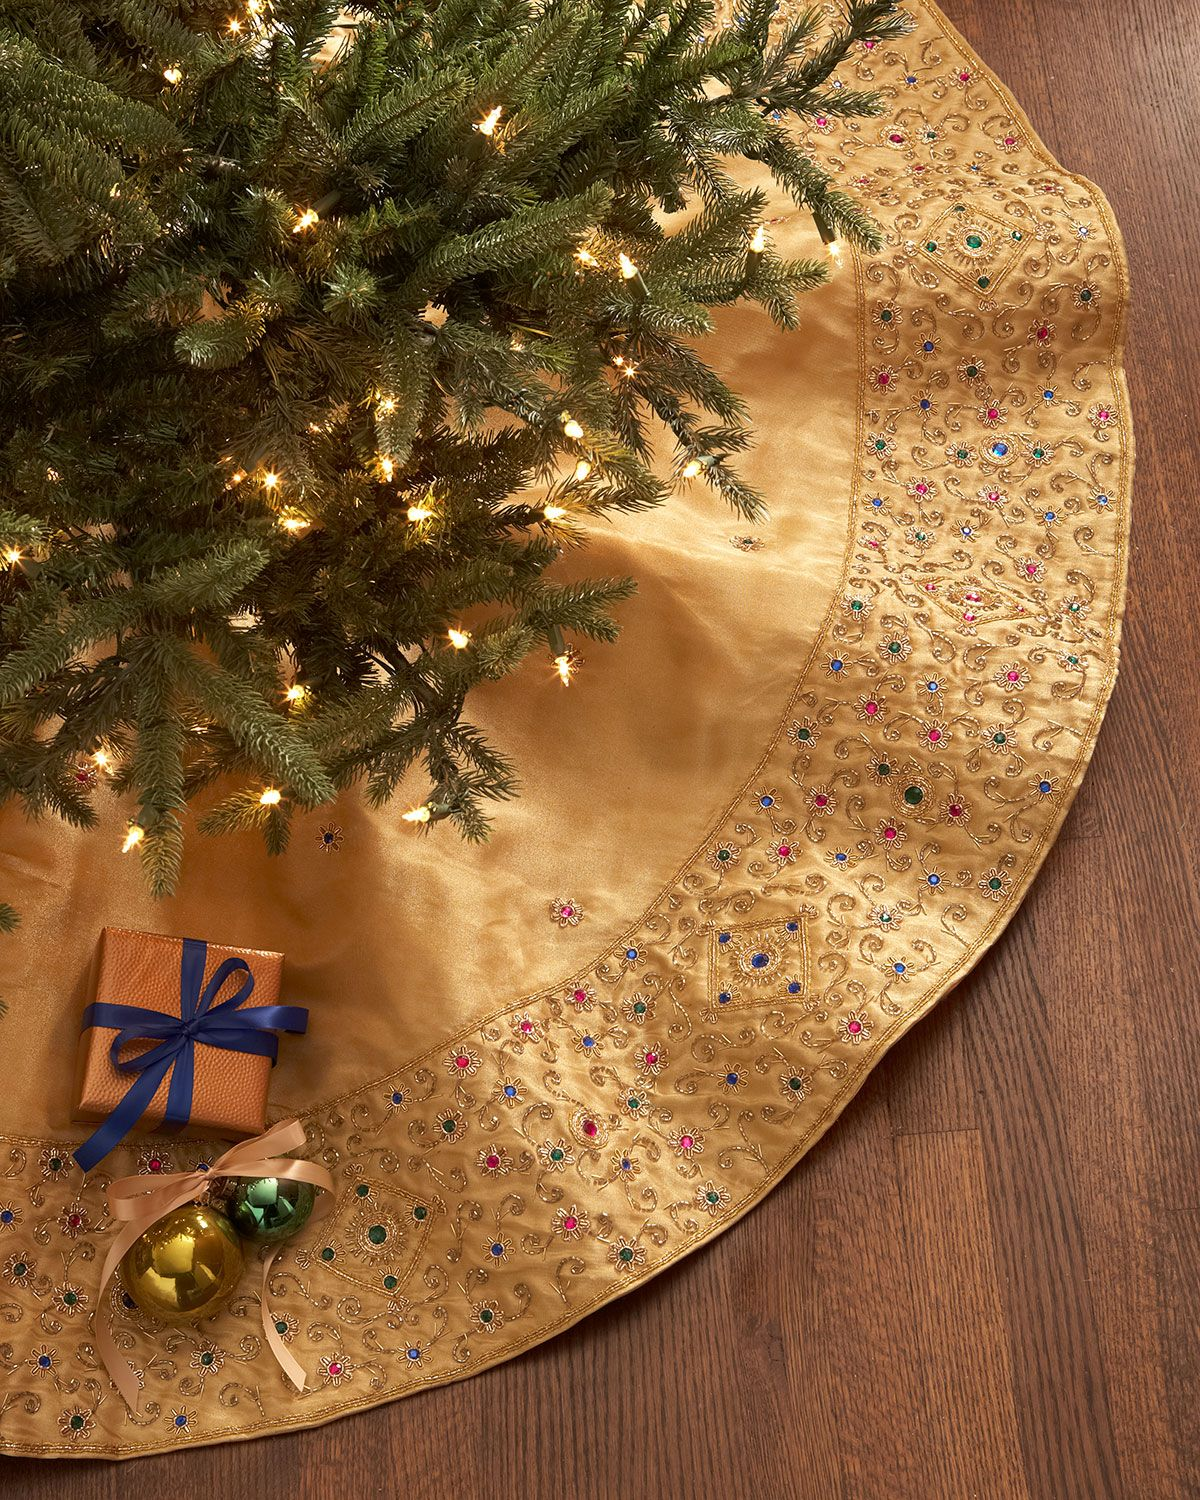 Sudha Pennathur Gold Beaded Christmas Tree Skirt Elegant Christmas Trees Stocking Tree Xmas Tree Skirts